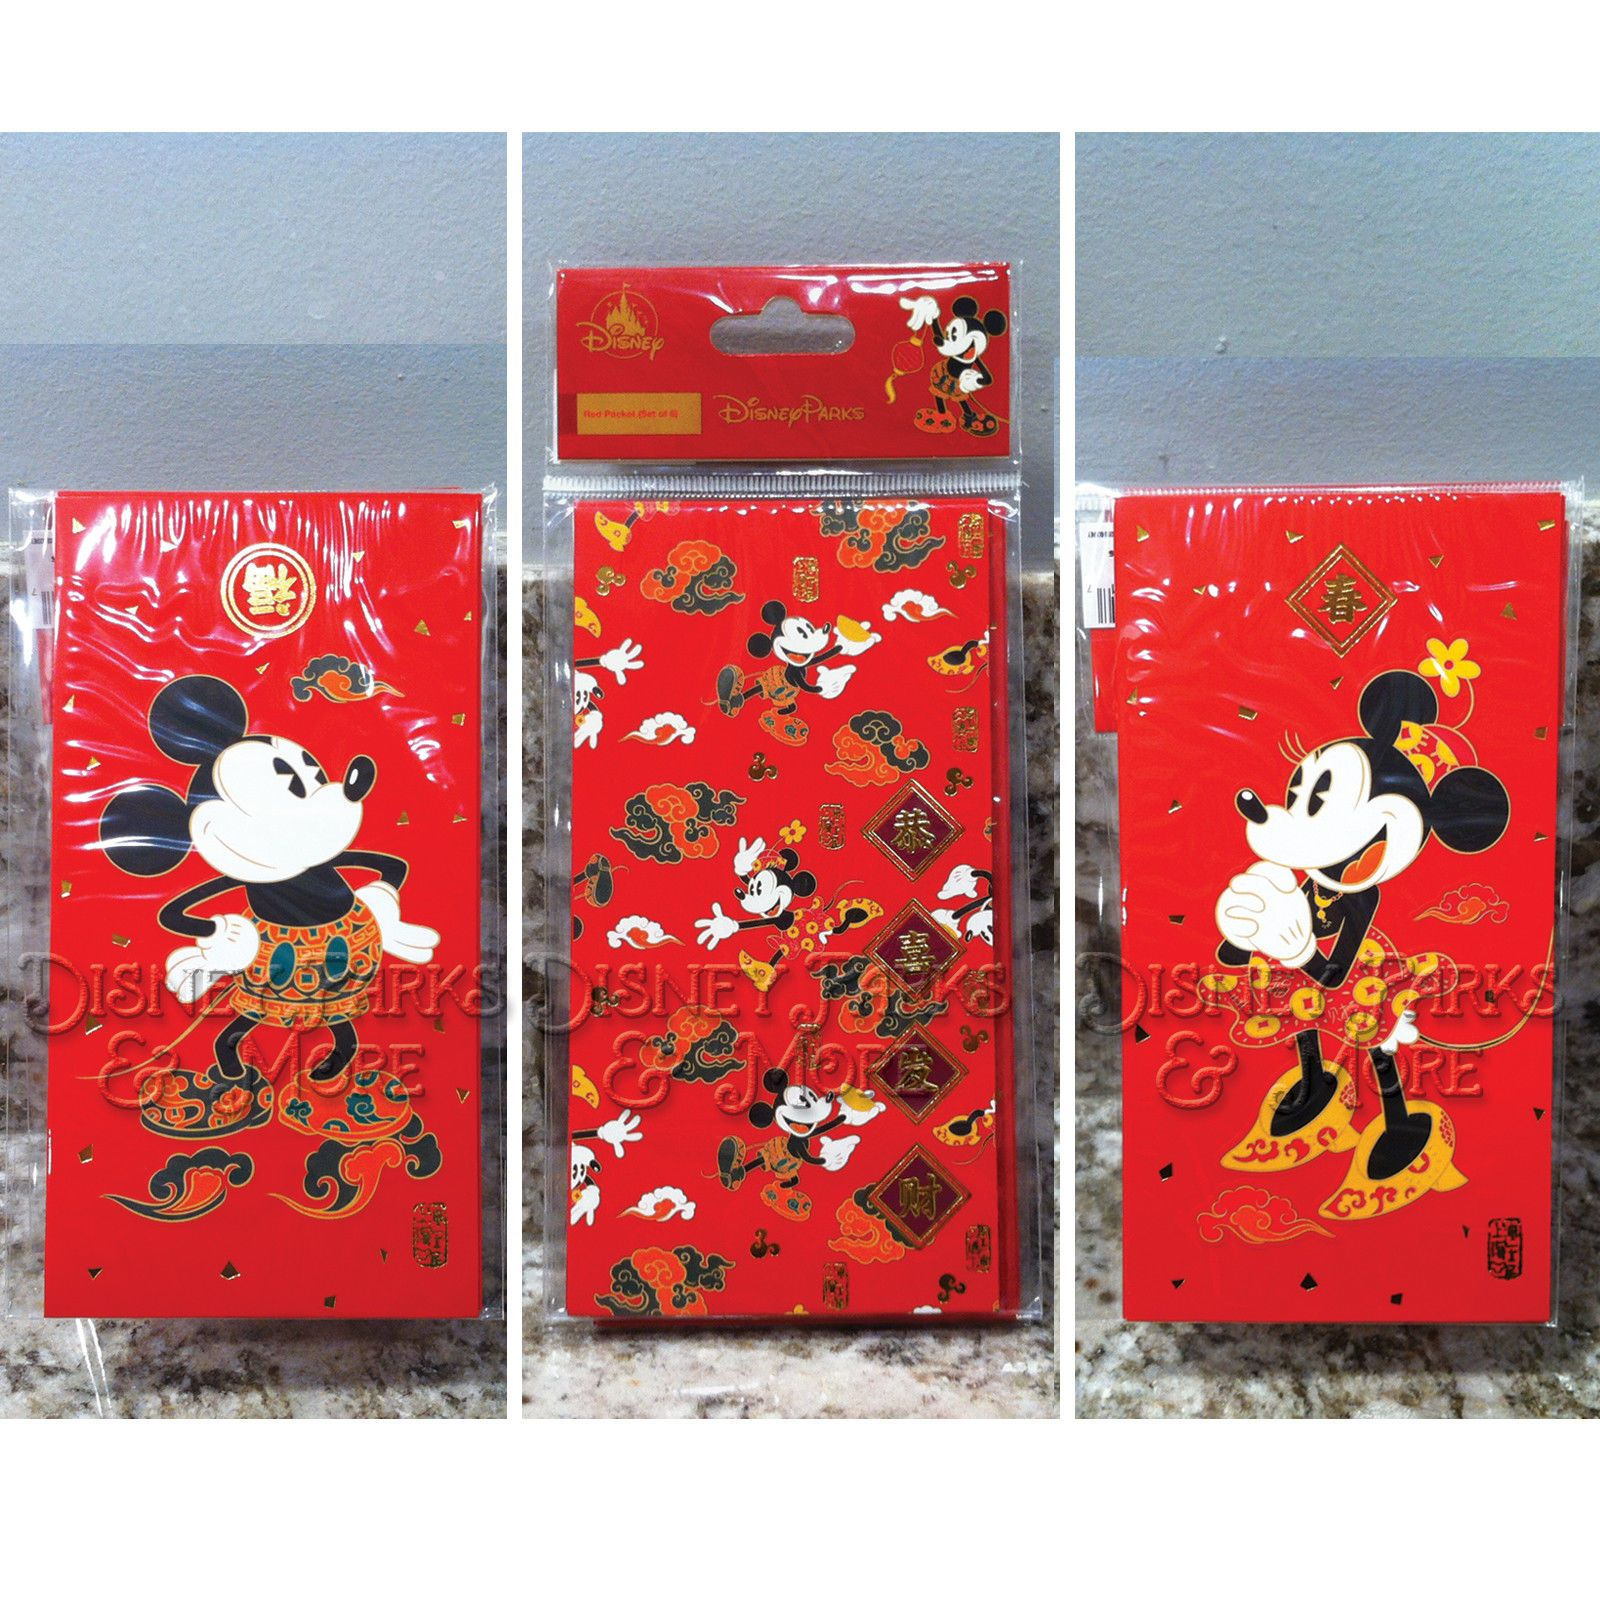 Disney Parks New Chinese 2020 Lunar New Year Minnie Mouse Headband Ears 34 95 Chinese New Year Gifts Chinese Red Envelope Red Packet